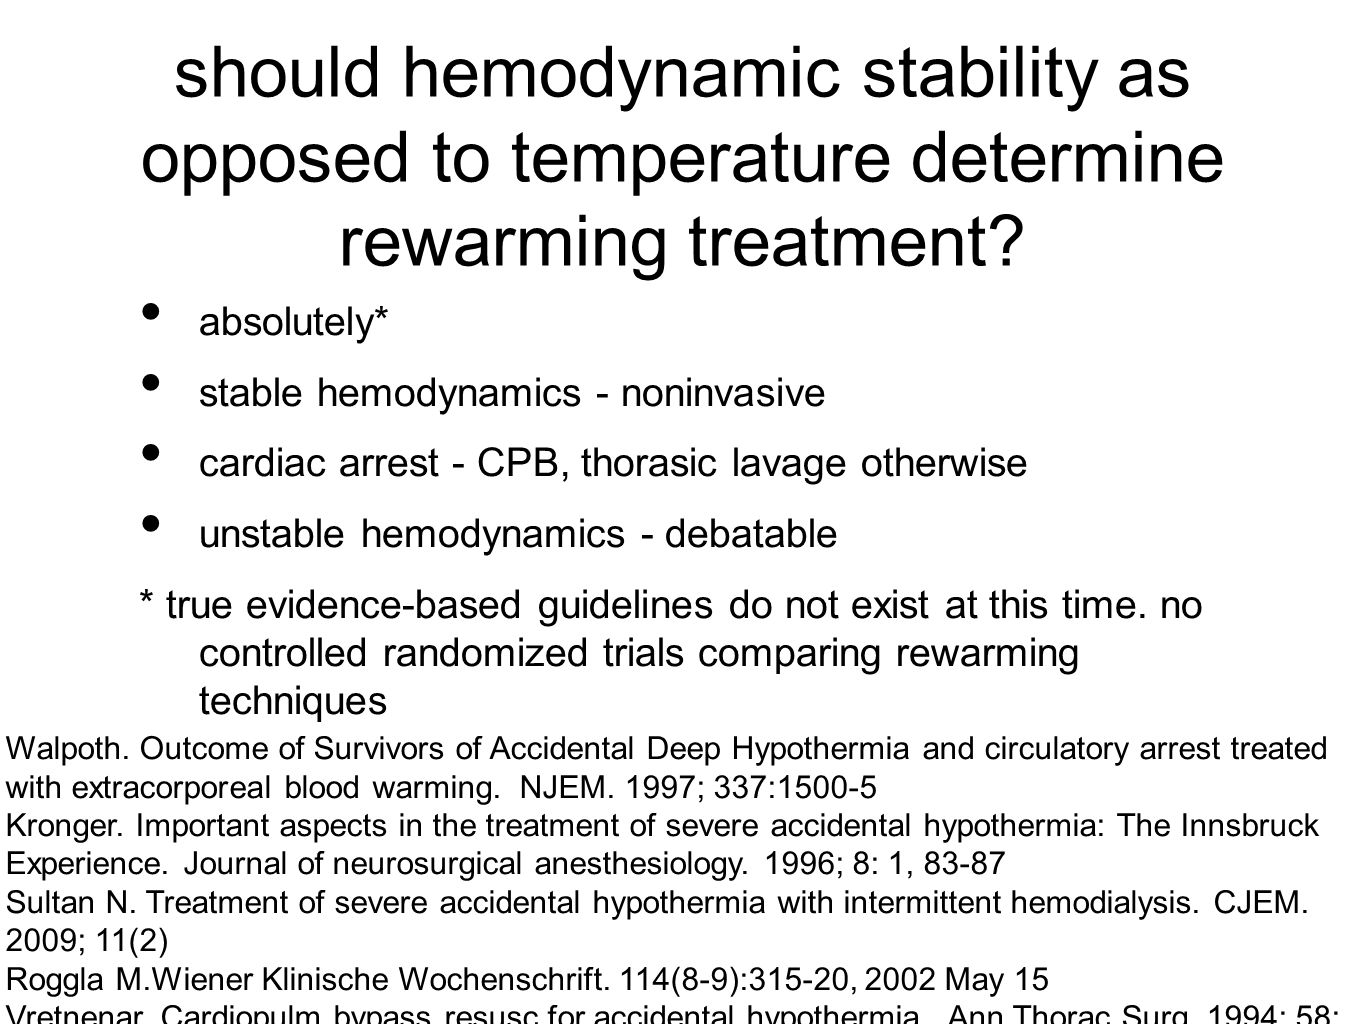 should hemodynamic stability as opposed to temperature determine rewarming treatment? absolutely* stable hemodynamics - noninvasive cardiac arrest - C